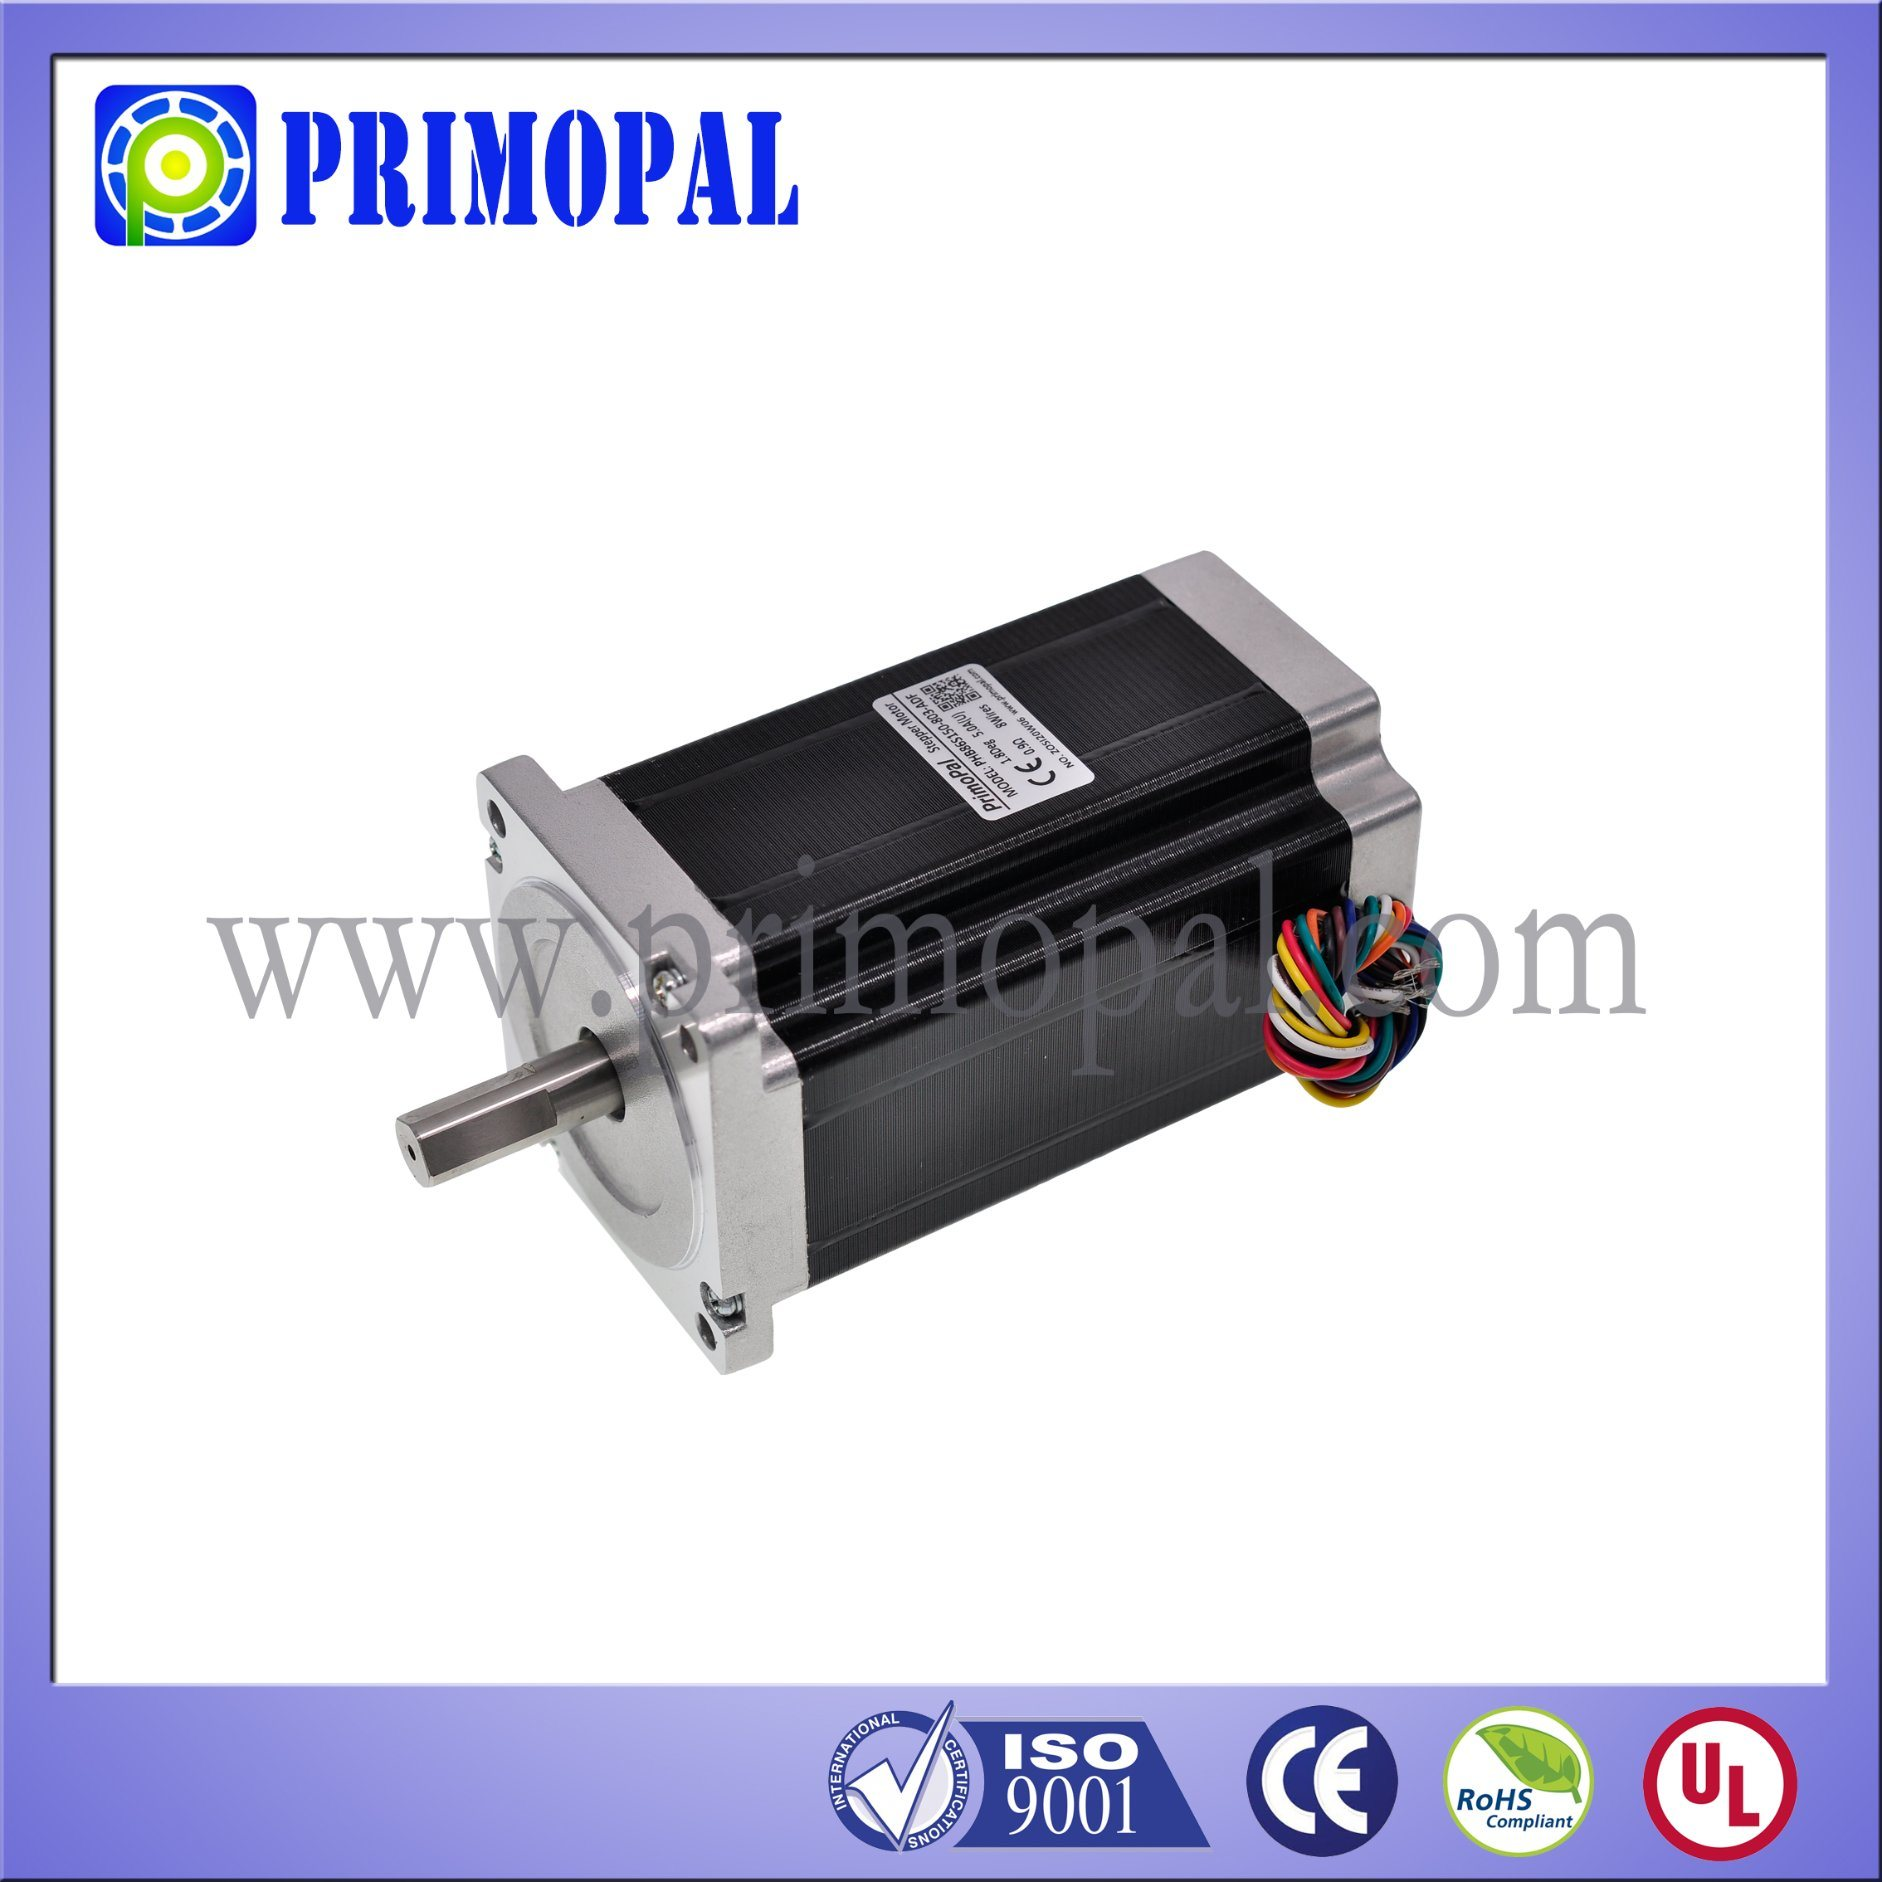 86mm 0.9 Degree NEMA 34 Stepper Motor Top Quality!